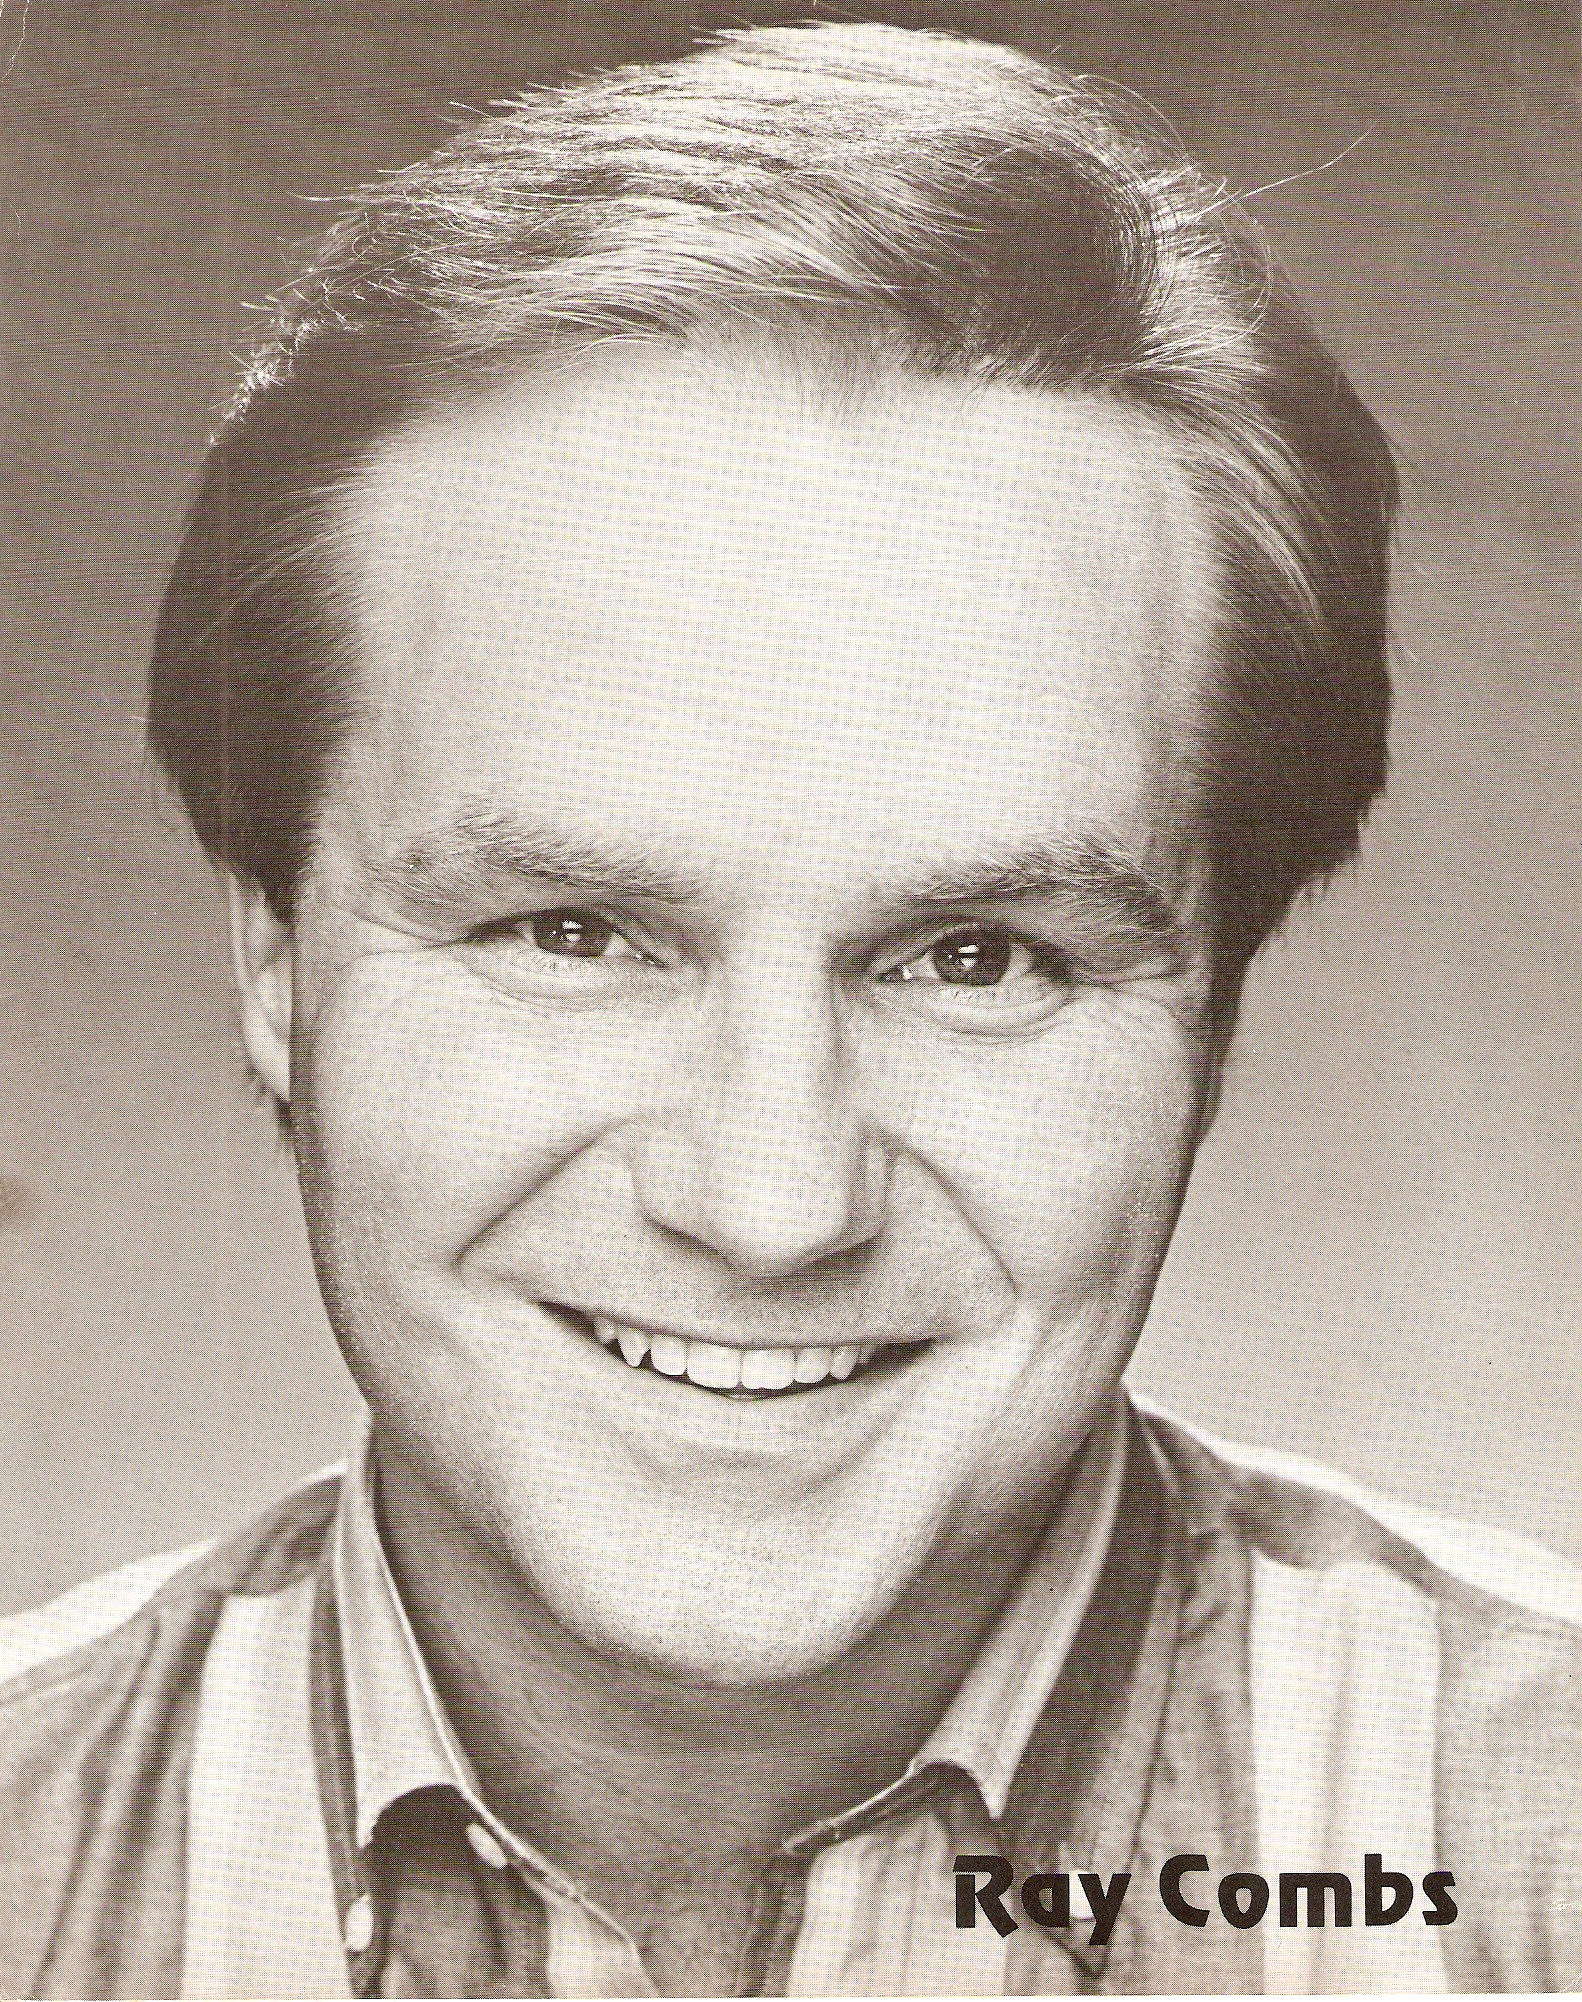 Five Bedroom Homes Comedian Ray Combs Died 20 Years Ago Today Wvxu